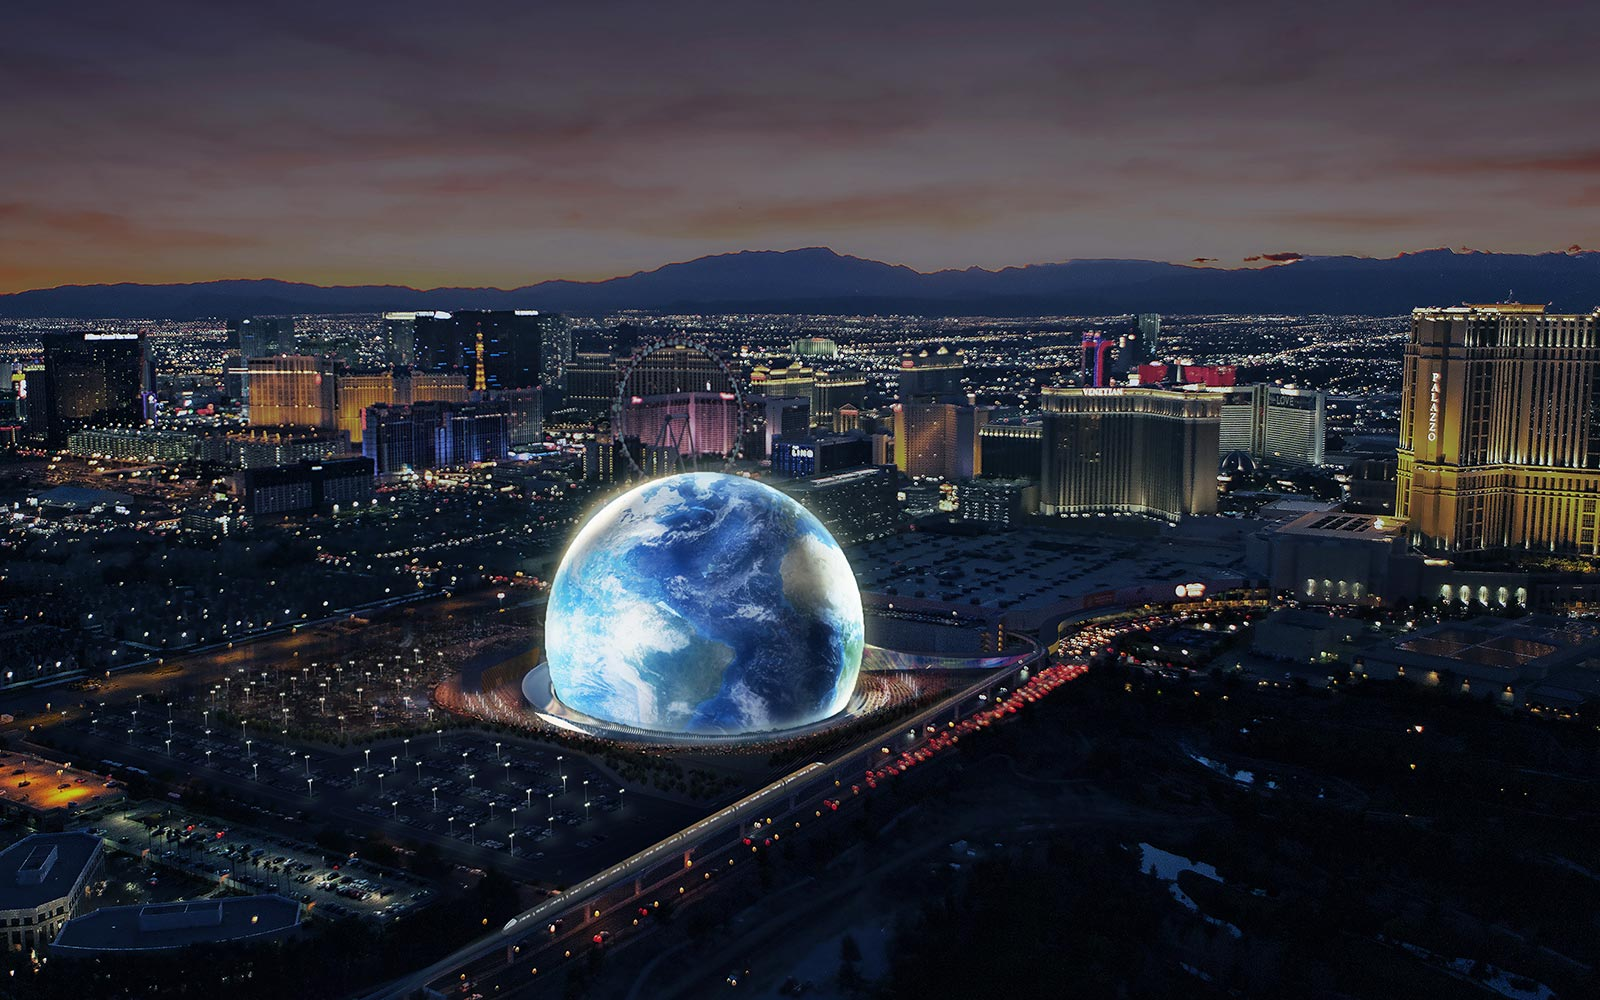 A Giant Space Orb Concert Venue Is Coming to Las Vegas in 2020